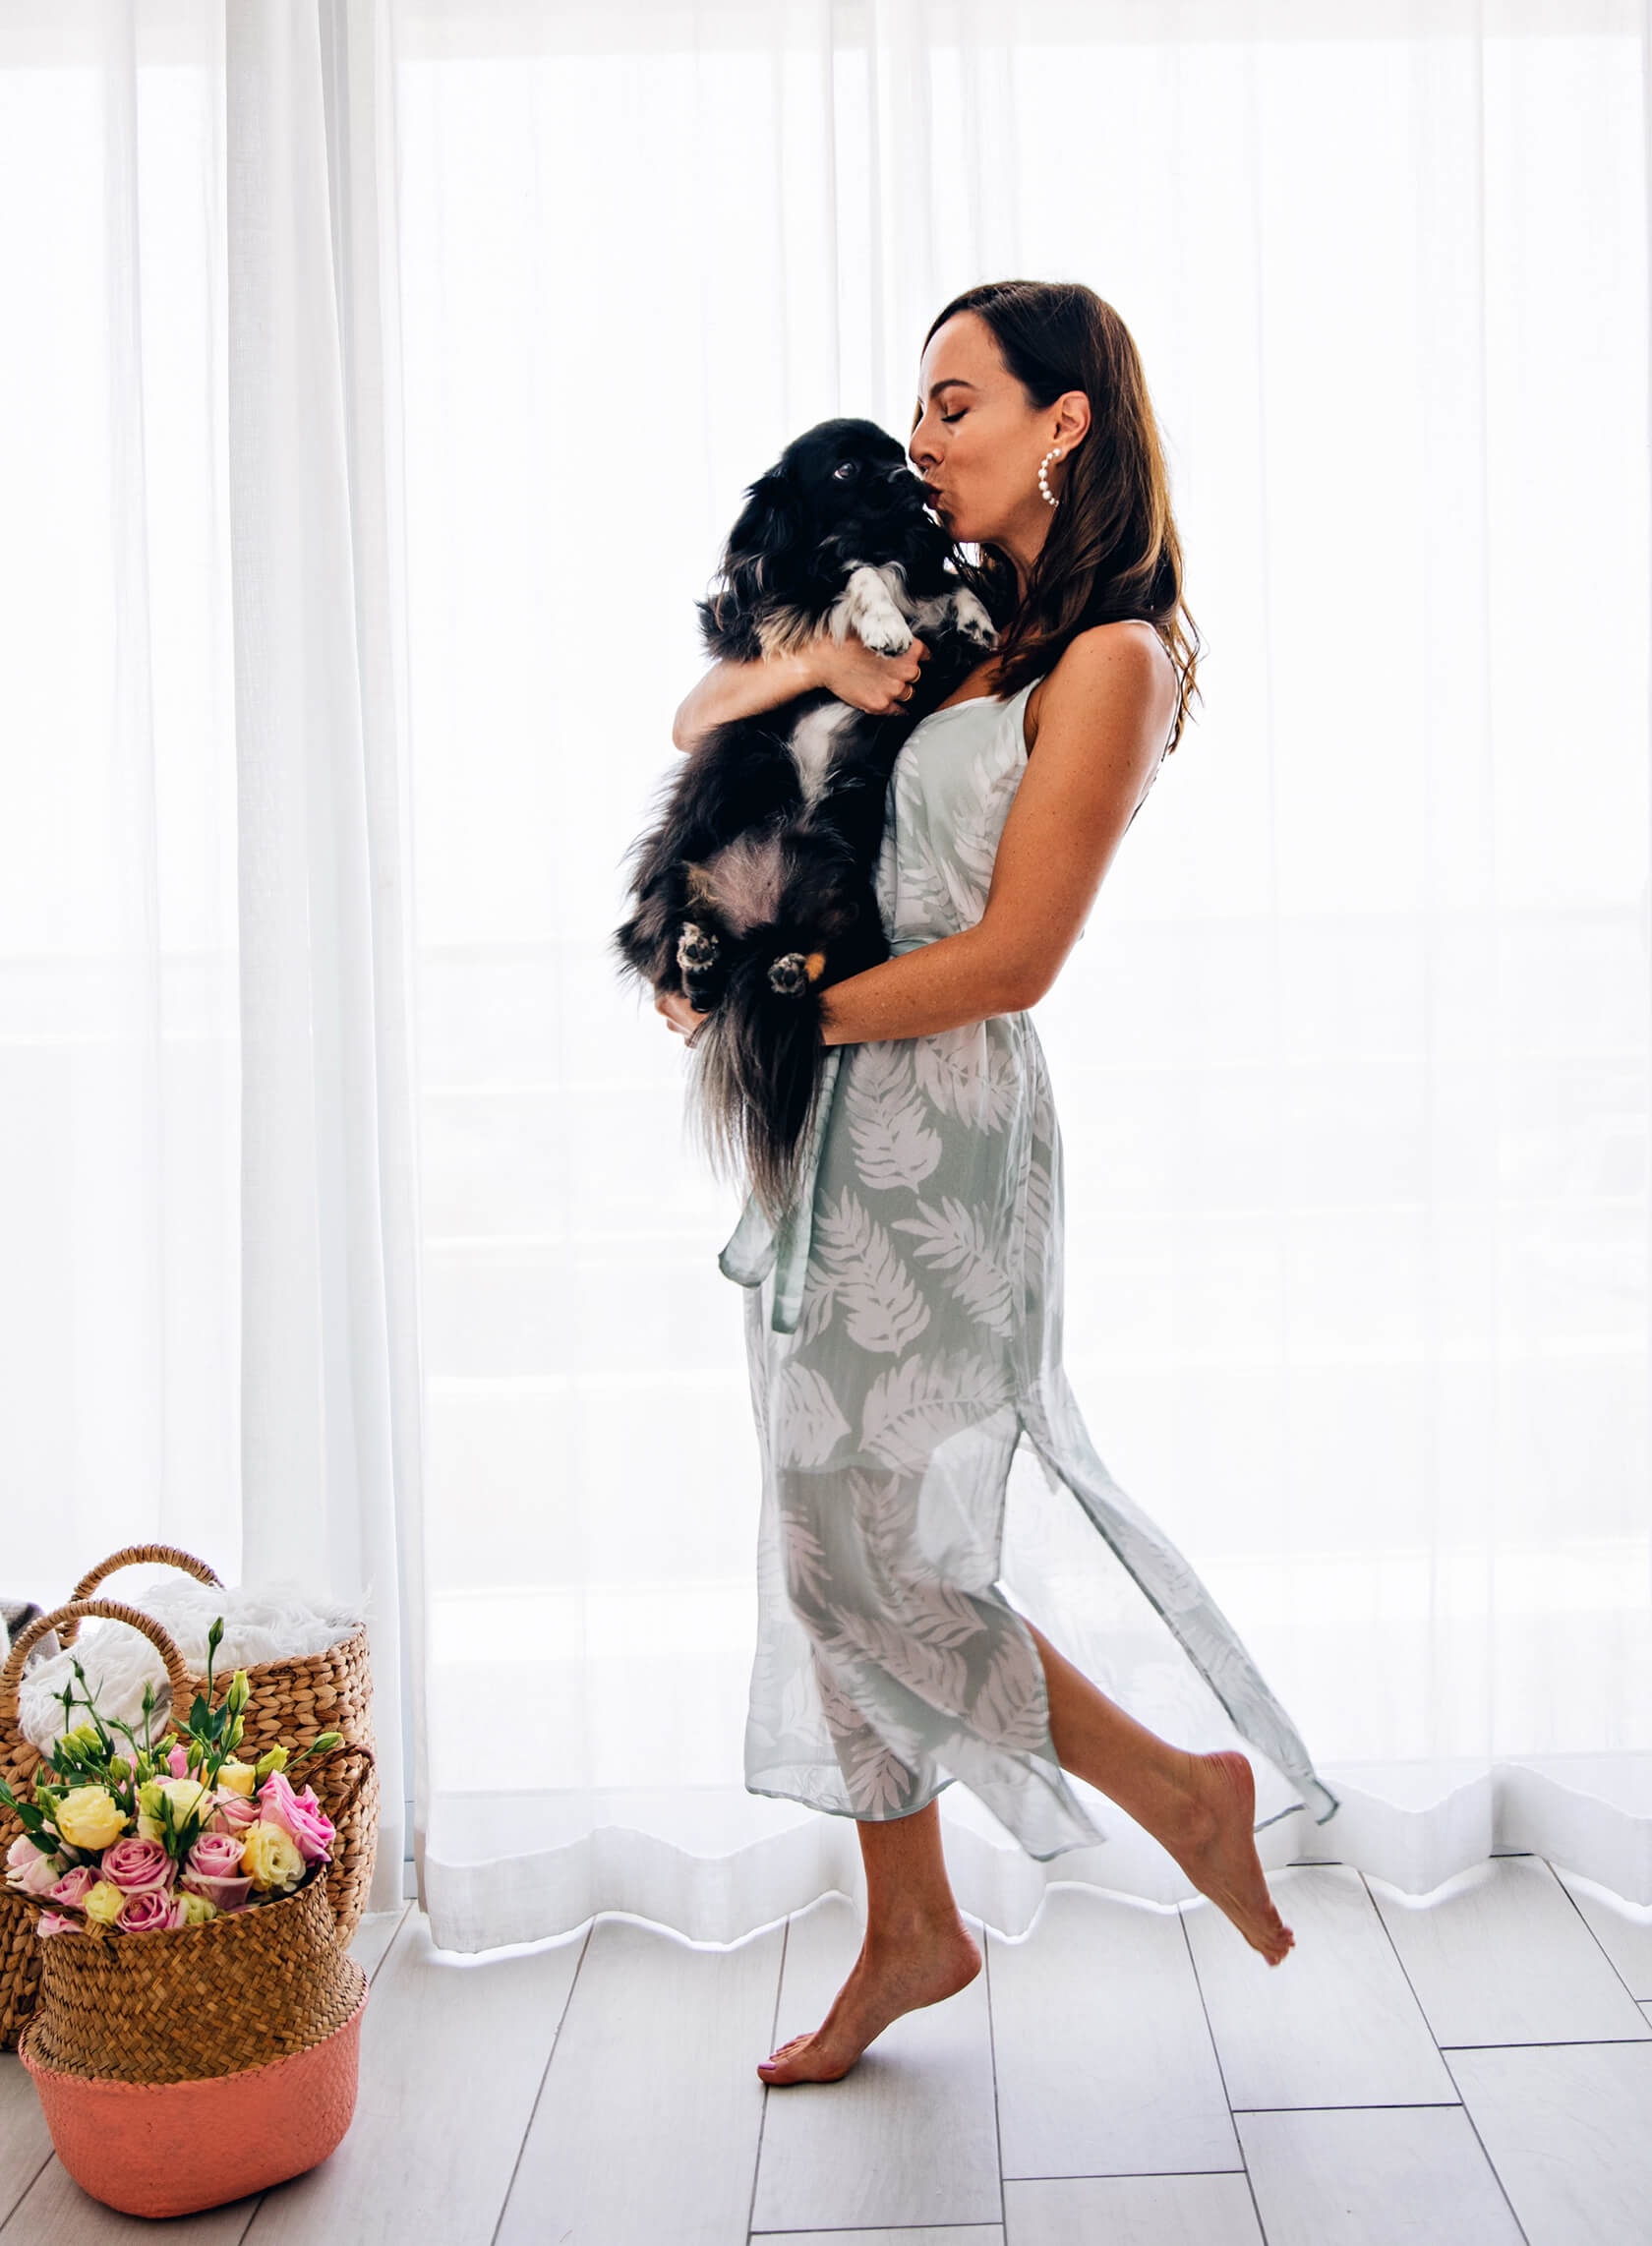 Sydne Style shows cute photos of blogger and dog for national rescue dog day